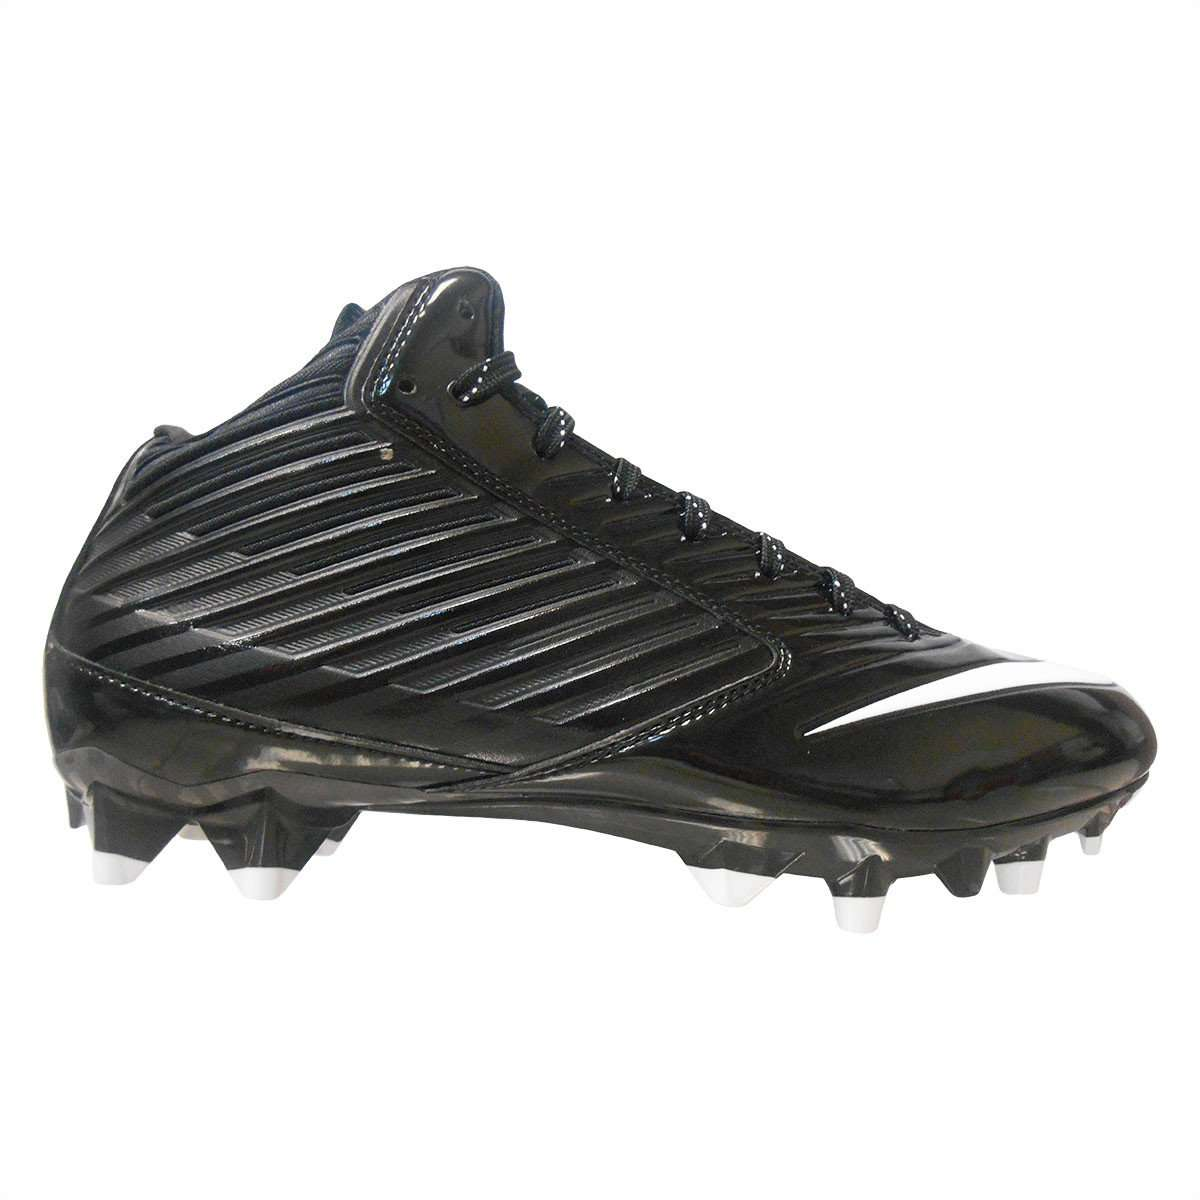 Nike Vapor Speed 3/4 TD Football Cleats - League Outfitters .